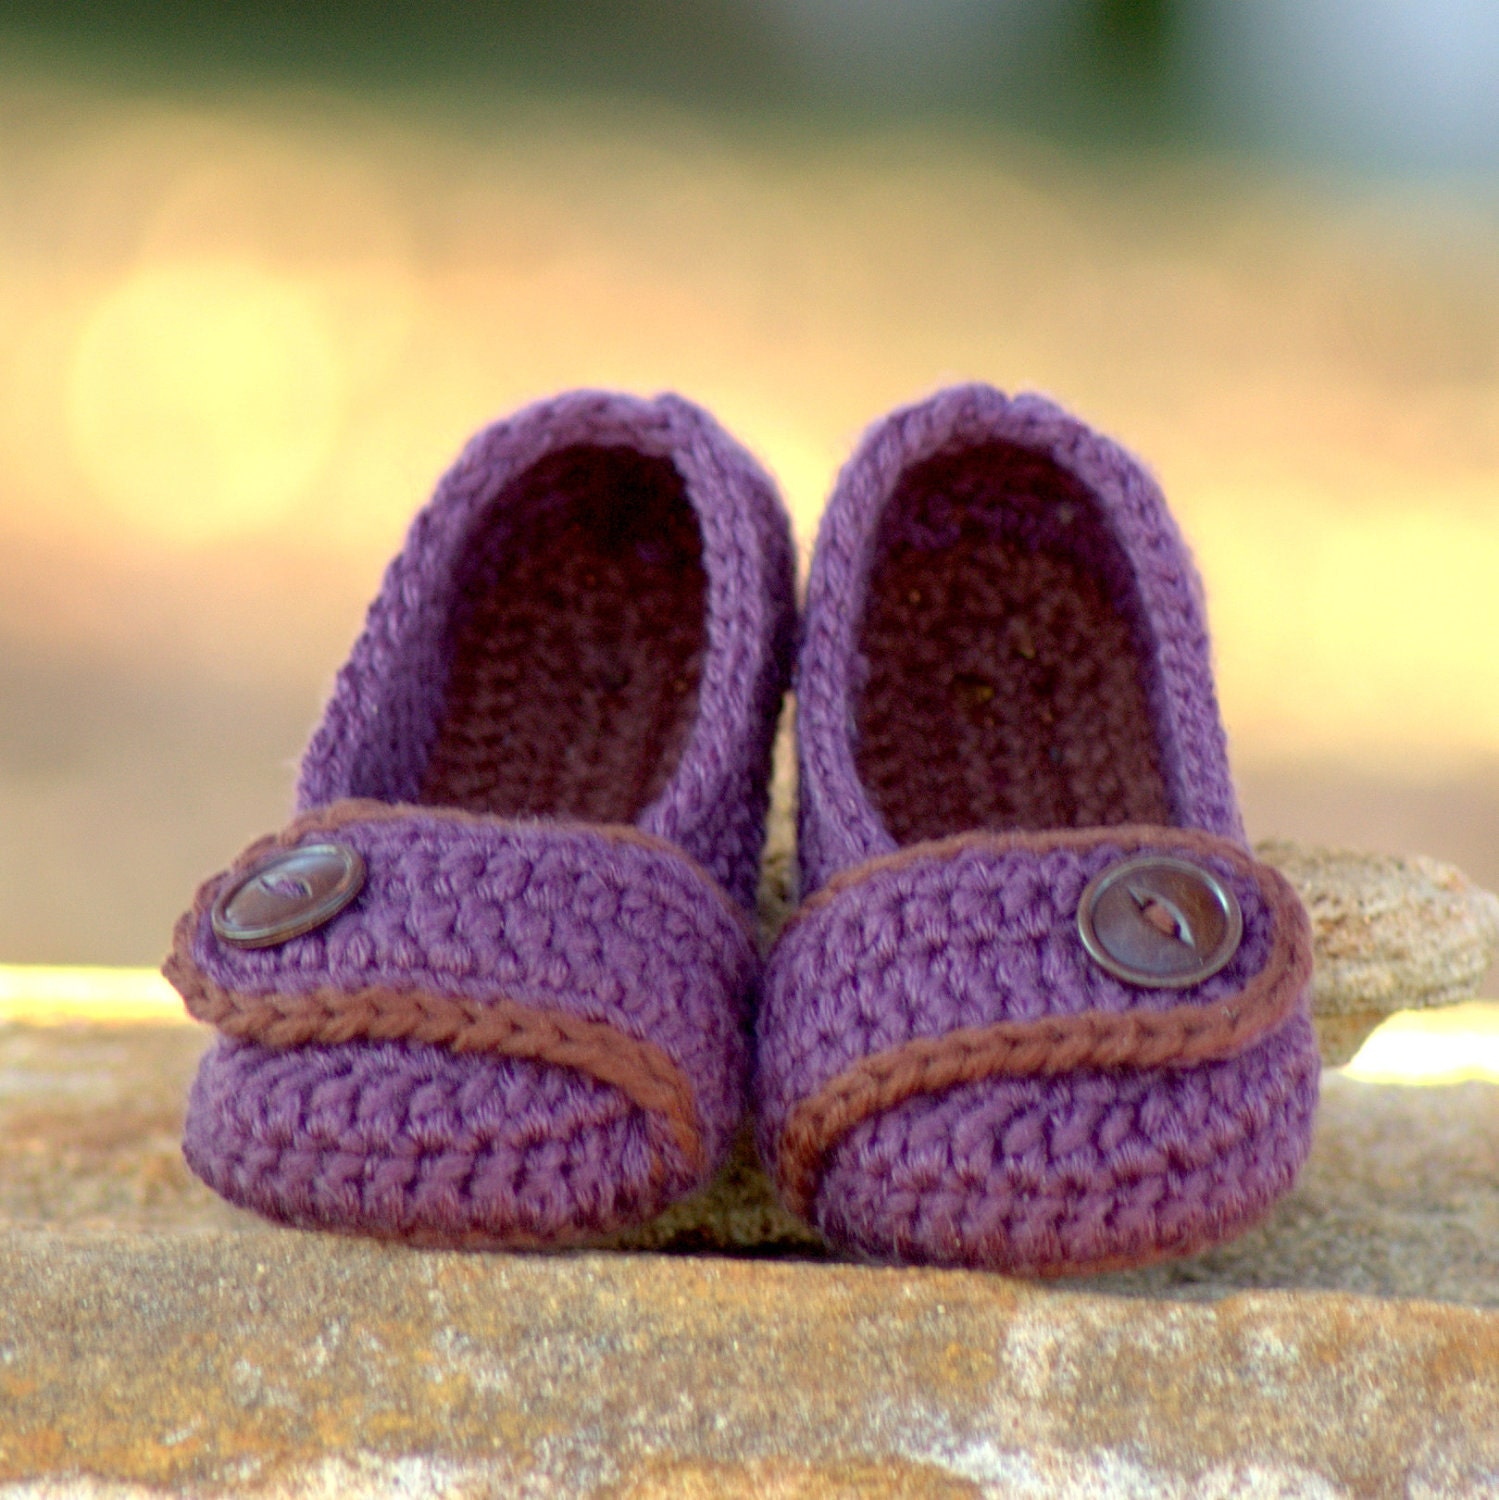 Crochet Patterns For Toddlers Slippers : Toddler Crochet Pattern for Valerie Slipper by ...